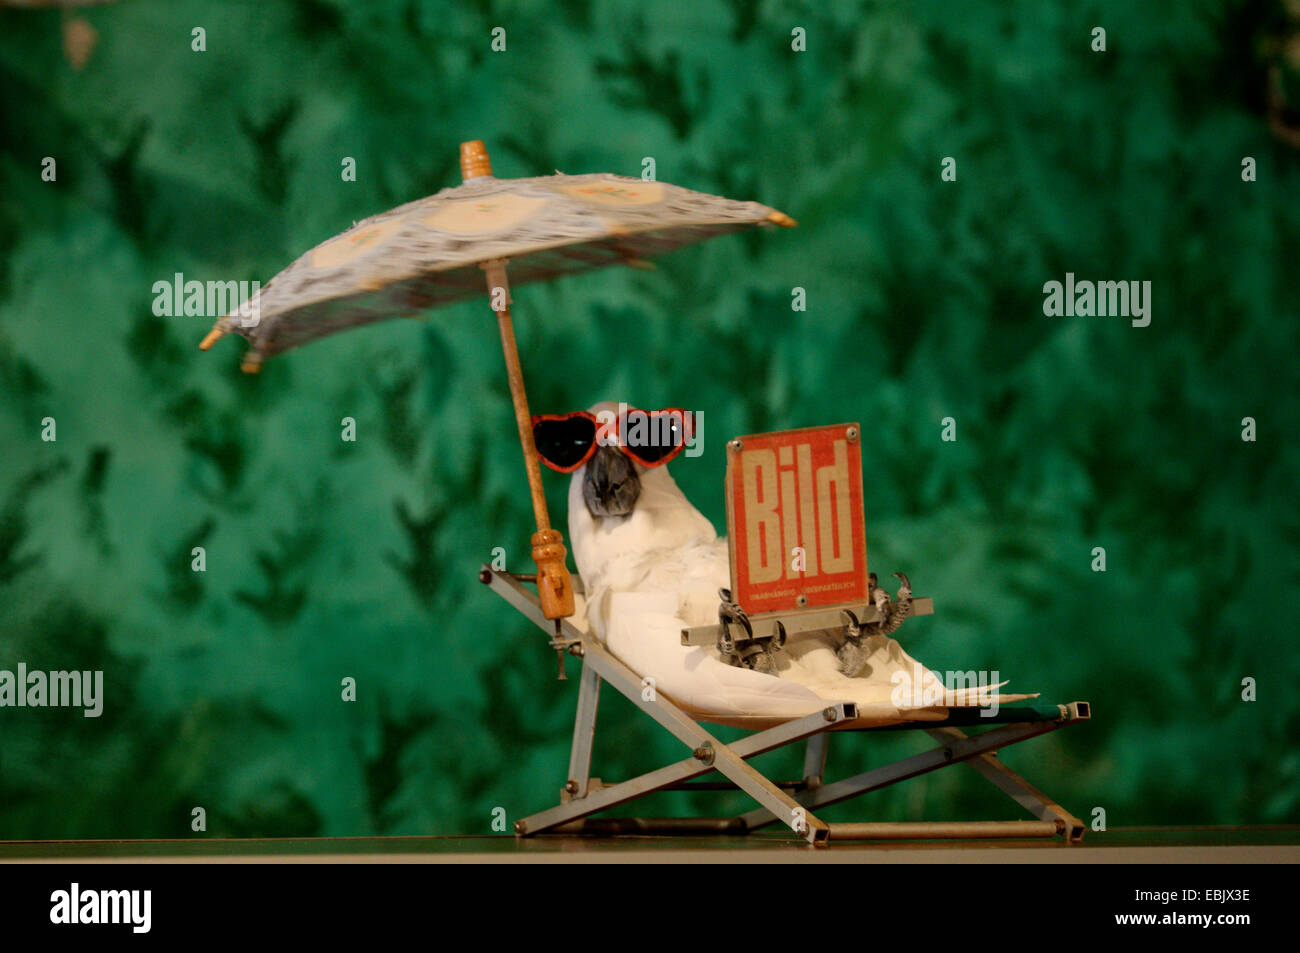 Parrot in the deck chair reading newspaper - Stock Image